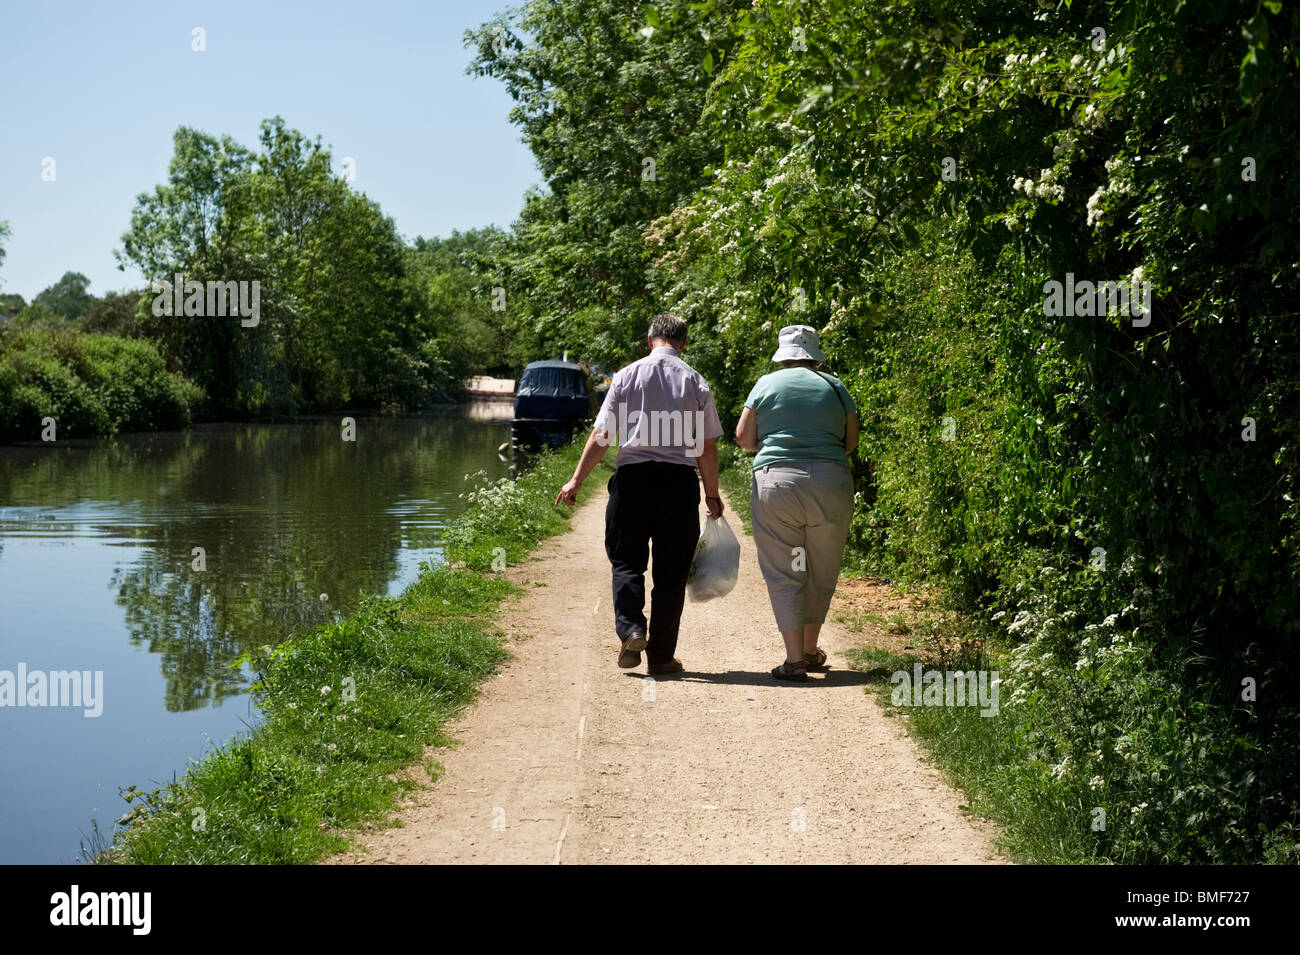 A middle aged couple 50's strolling along a towpath by the Grand Union canal on a sunny day. - Stock Image